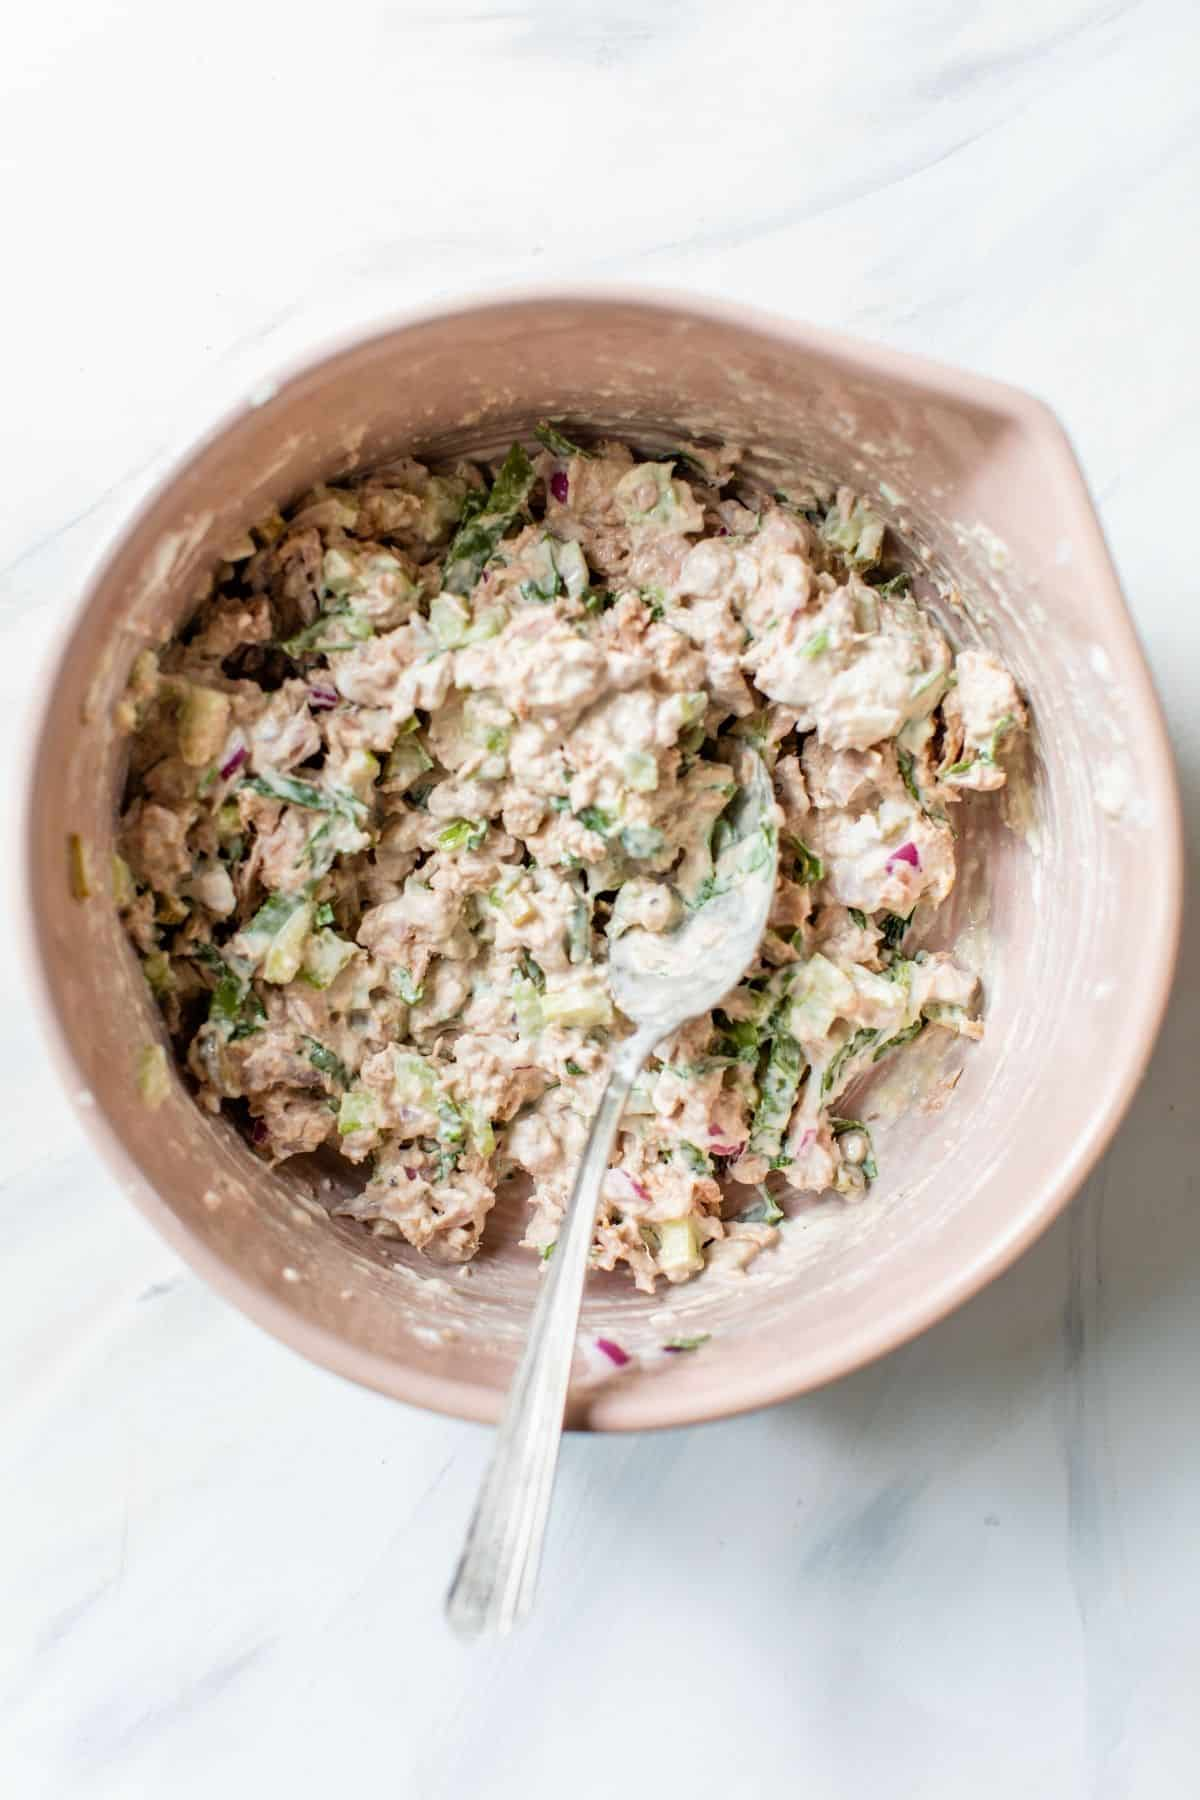 ingredients for tuna salad recipe stirred in a large mixing bowl